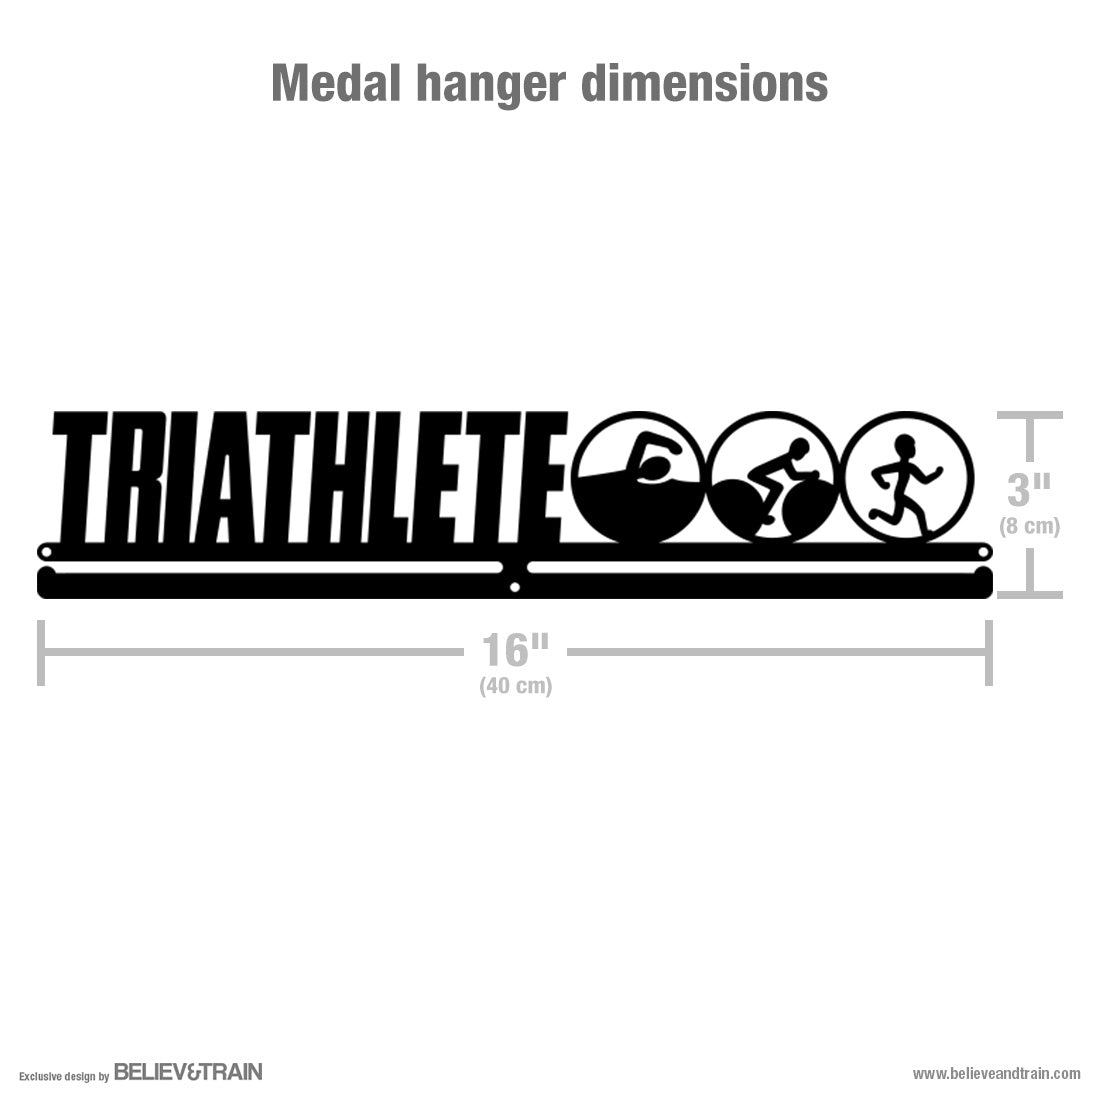 Triathlete - Triathlon Medal Hanger